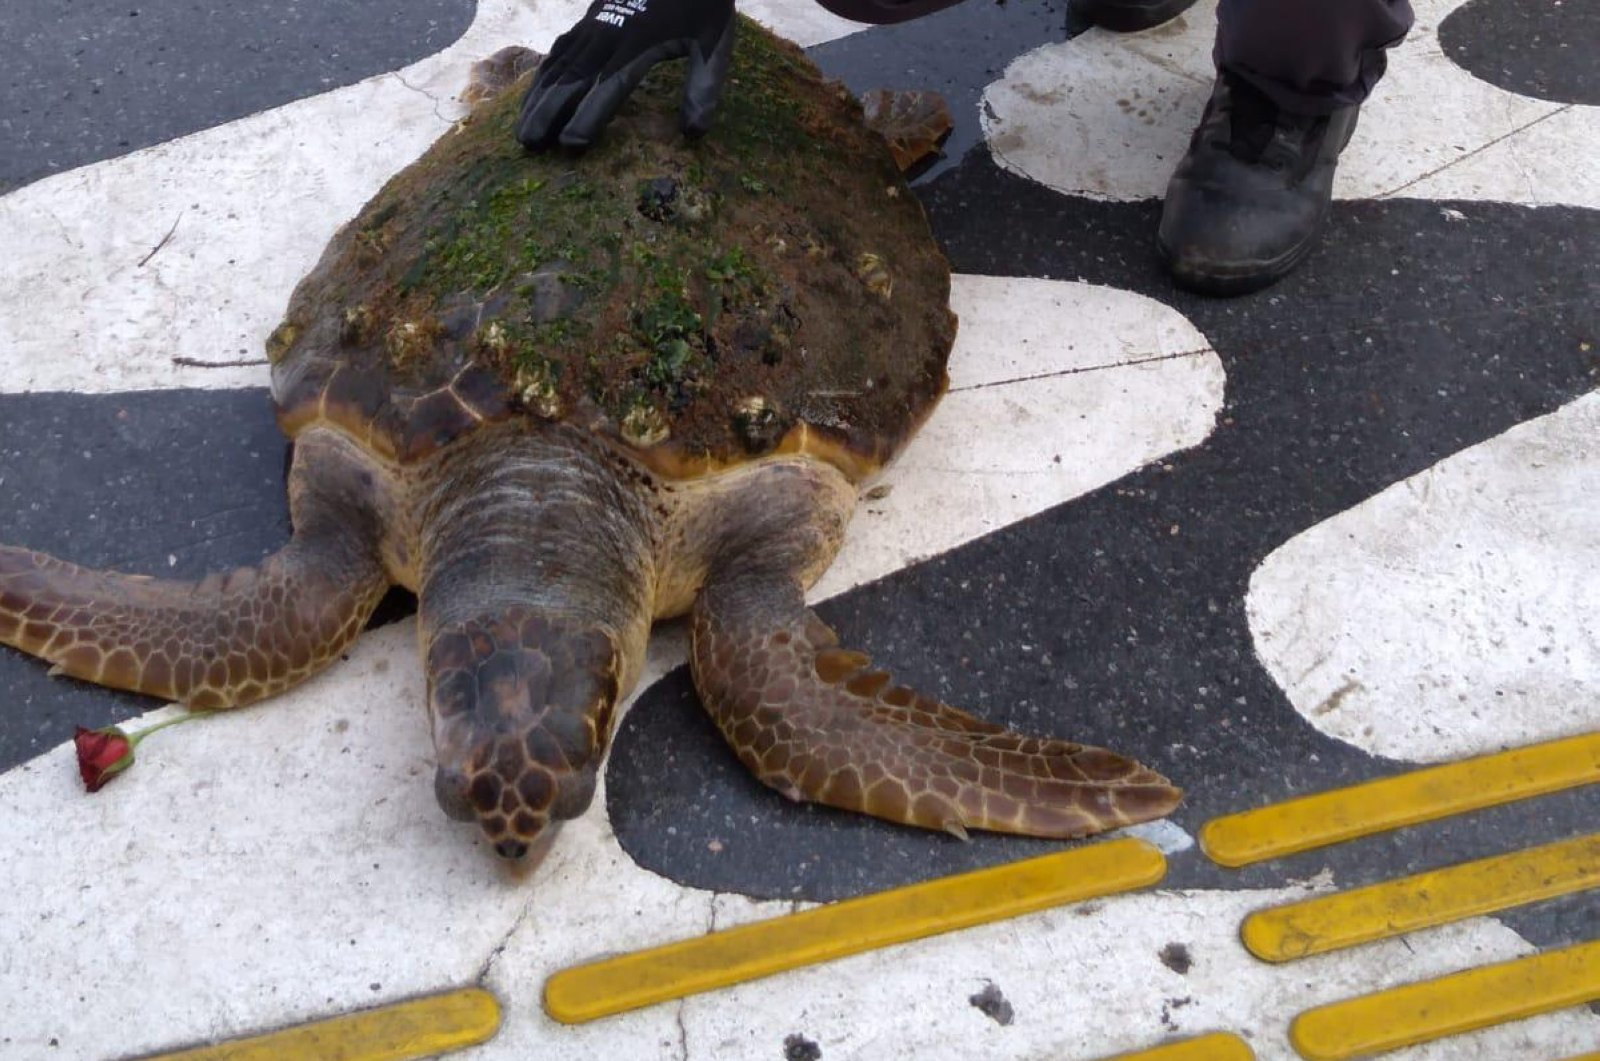 A loggerhead sea turtle is seen after being rescued from the Gulf of Izmir, western Turkey, July 5, 2020. (AA Photo)